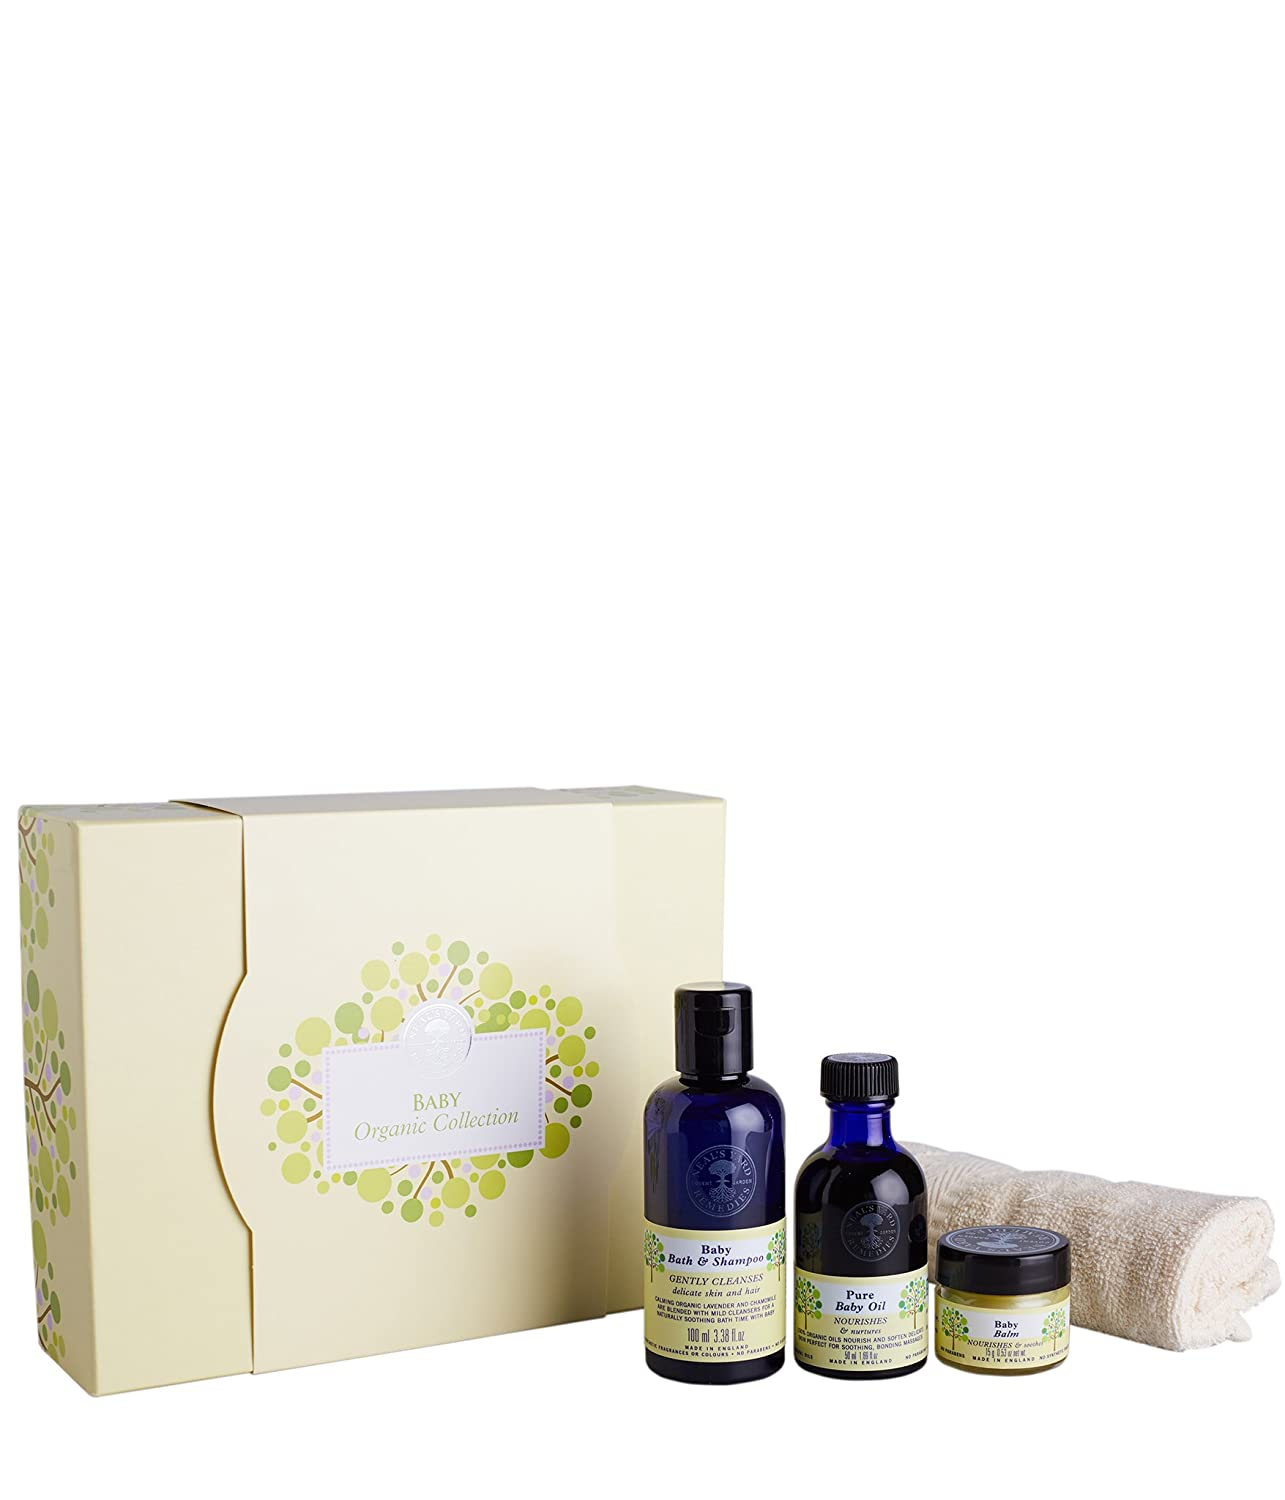 Neal's Yard Remedies Baby Organic Collection PLU 8471